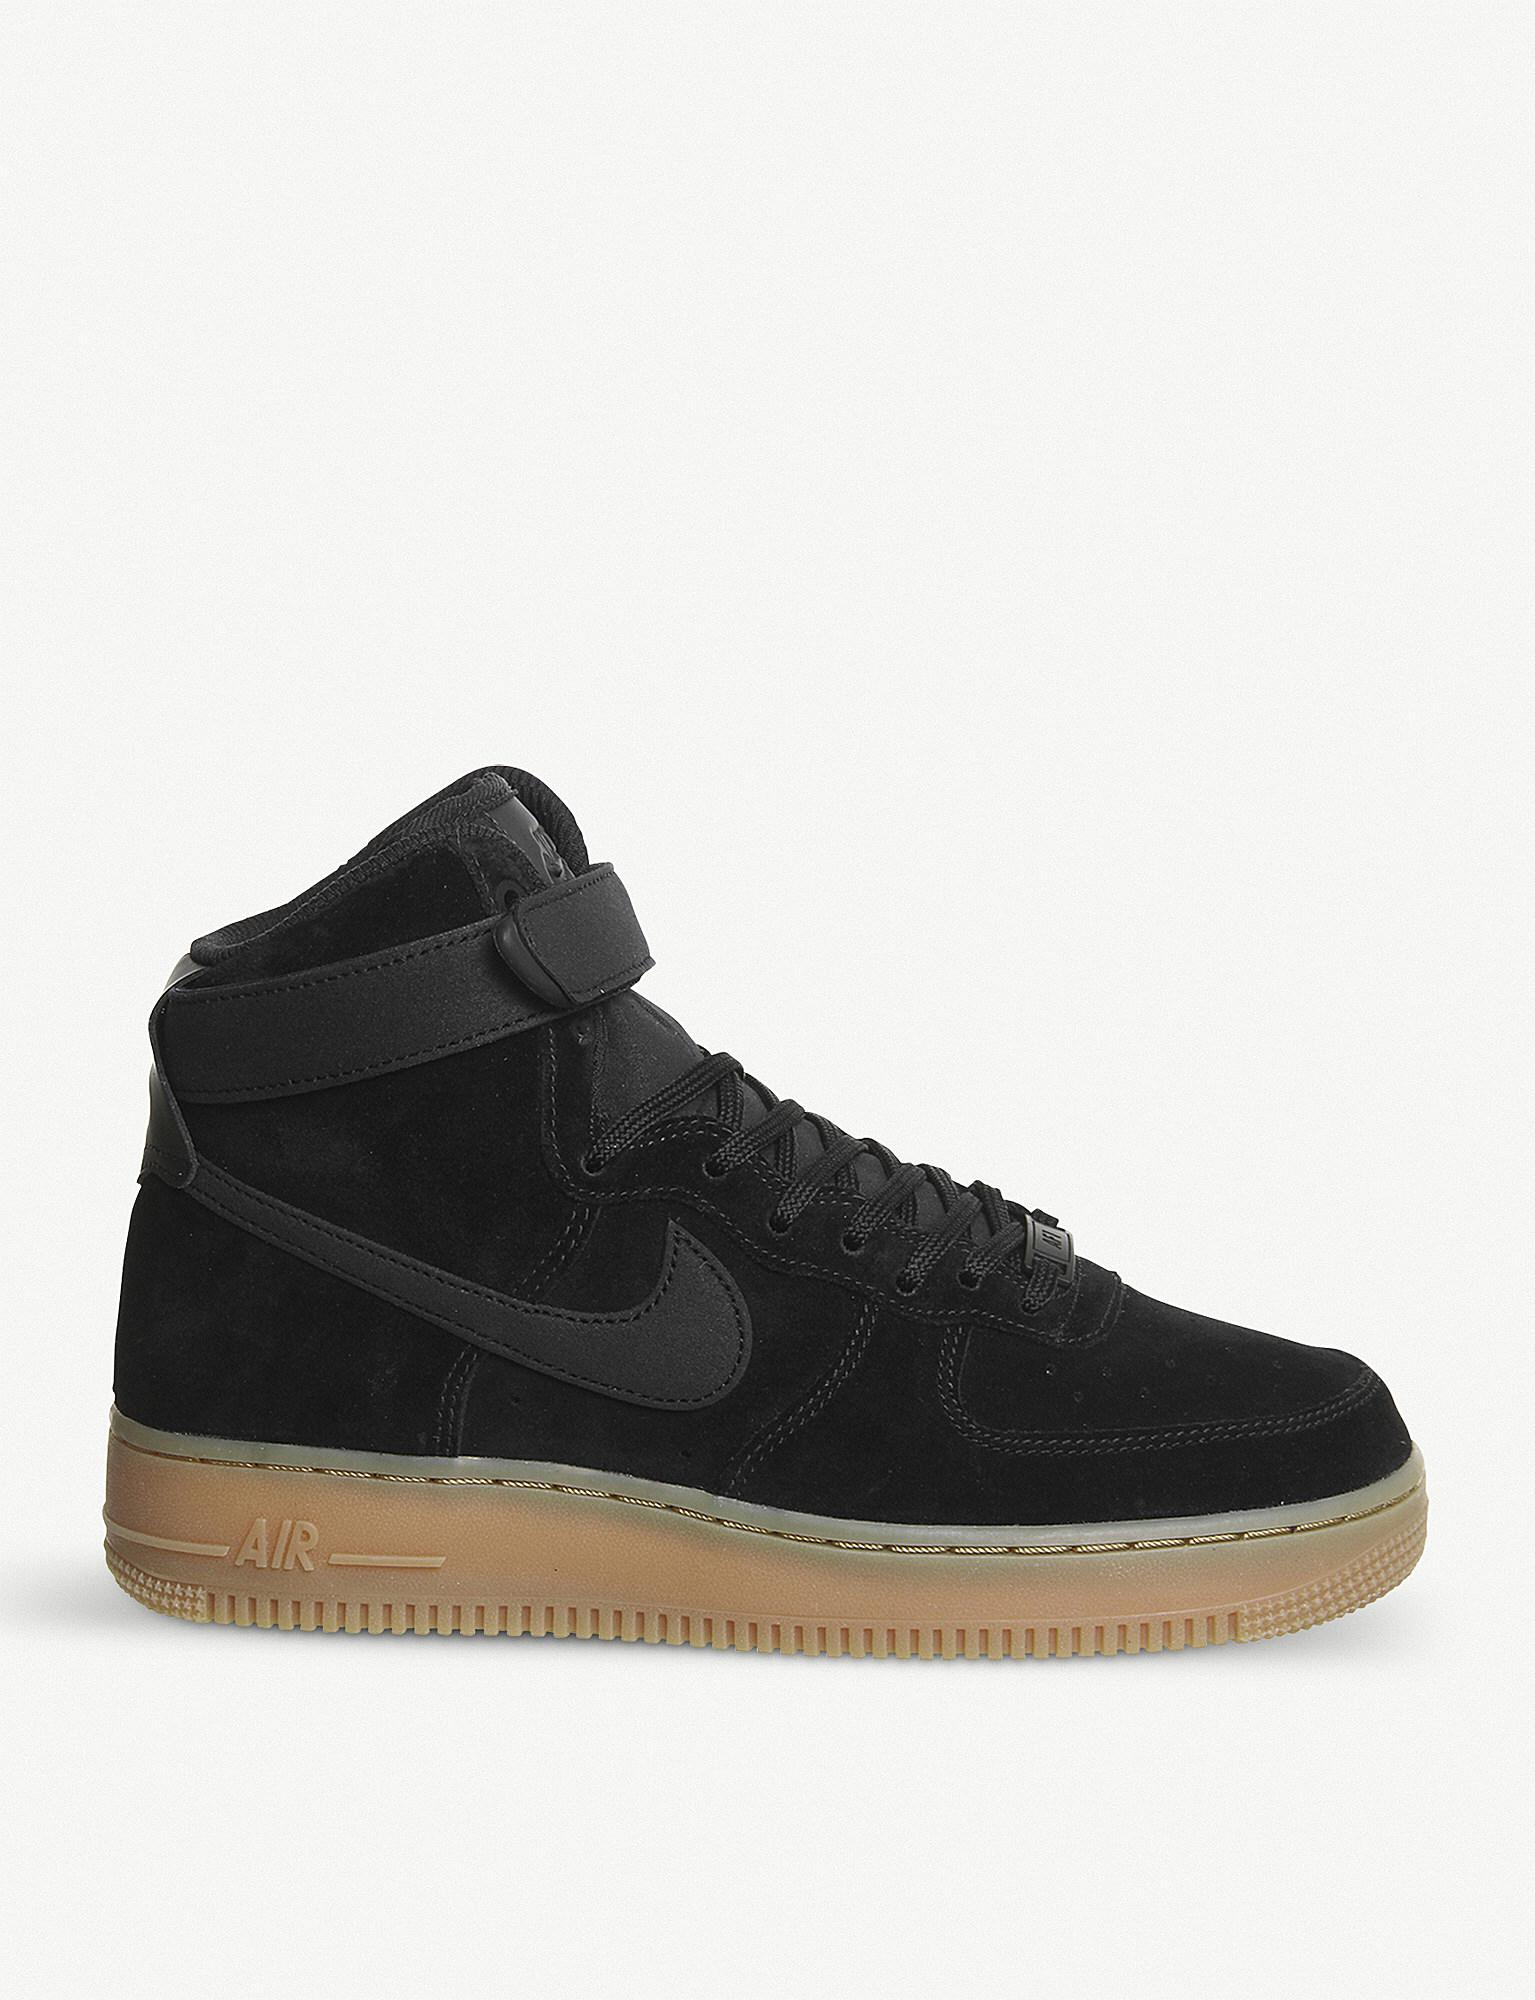 nike air force 1 gum sole junior